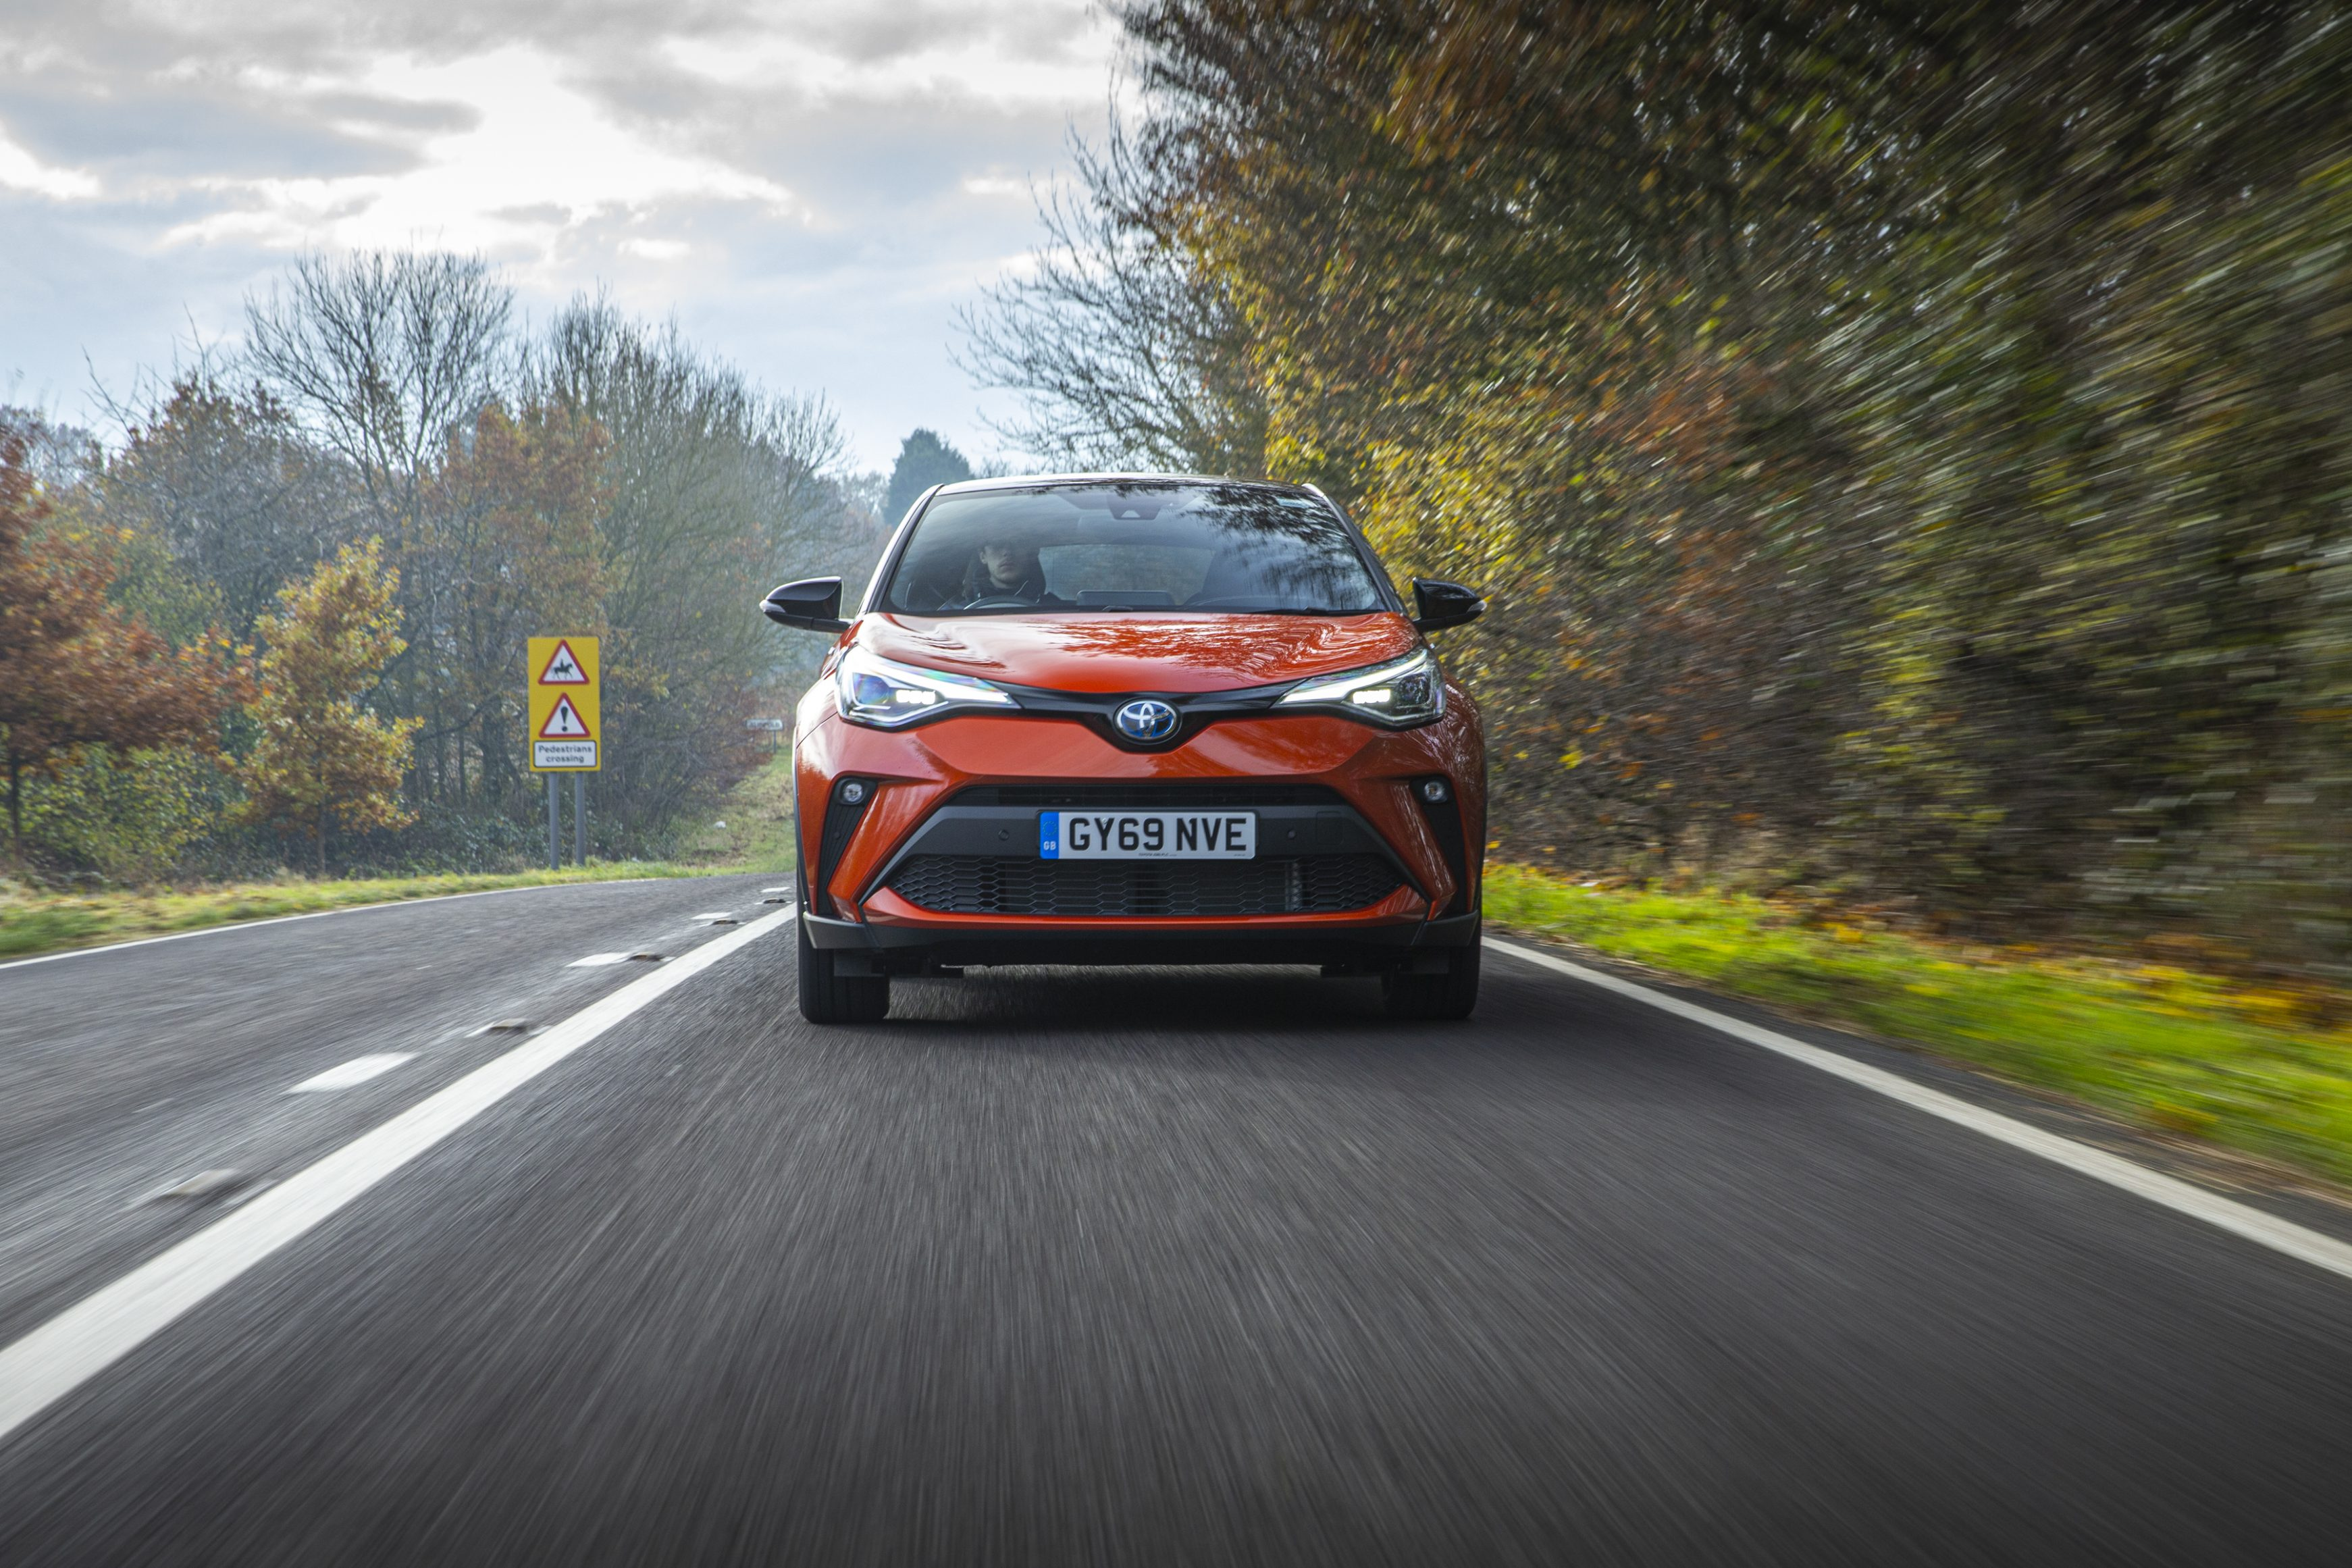 Toyota-C-HR driving on a country road